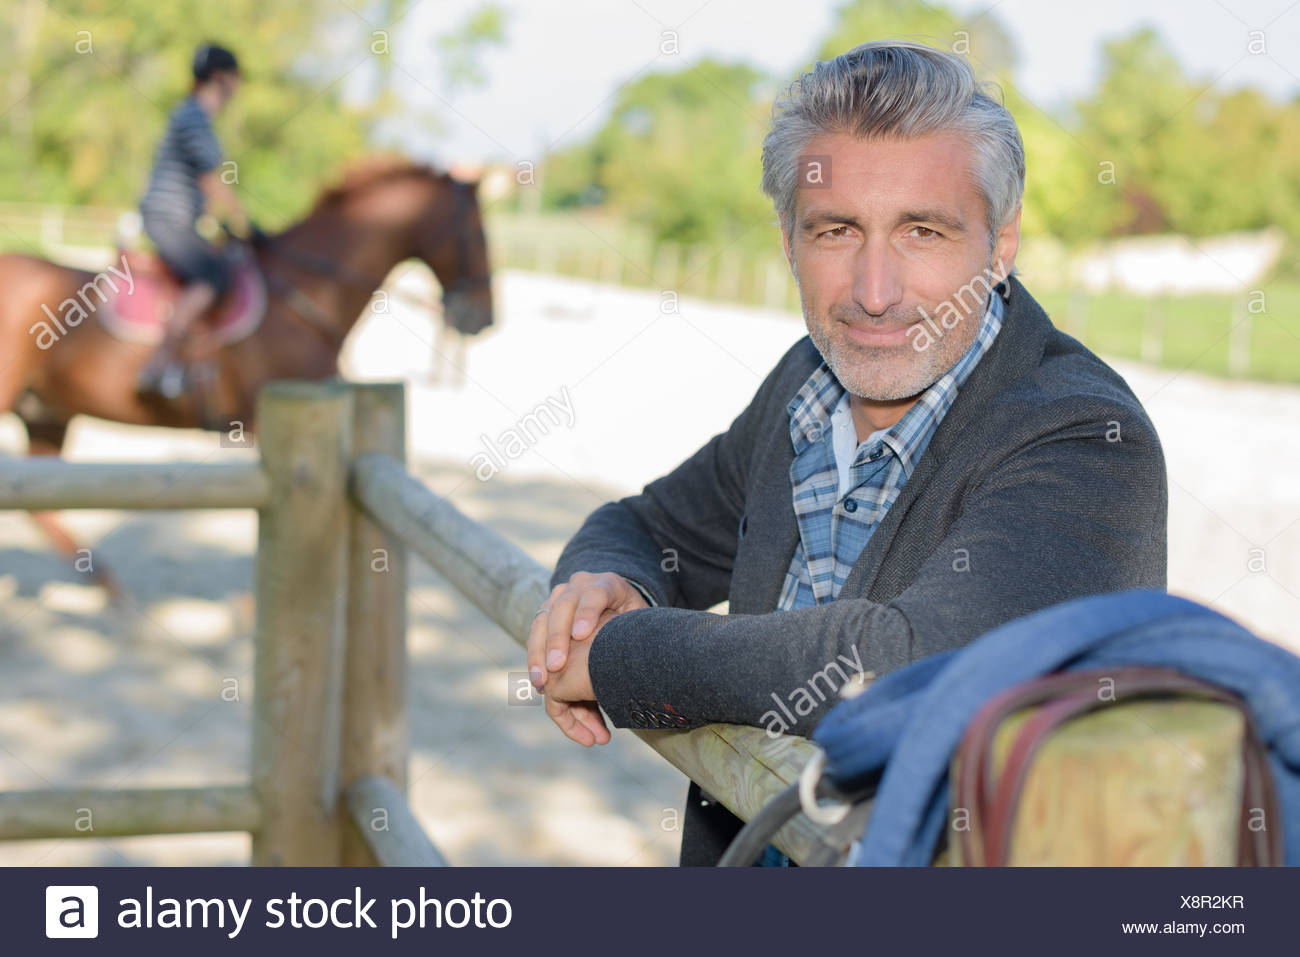 Portrait of man in equestrian arena - Stock Image